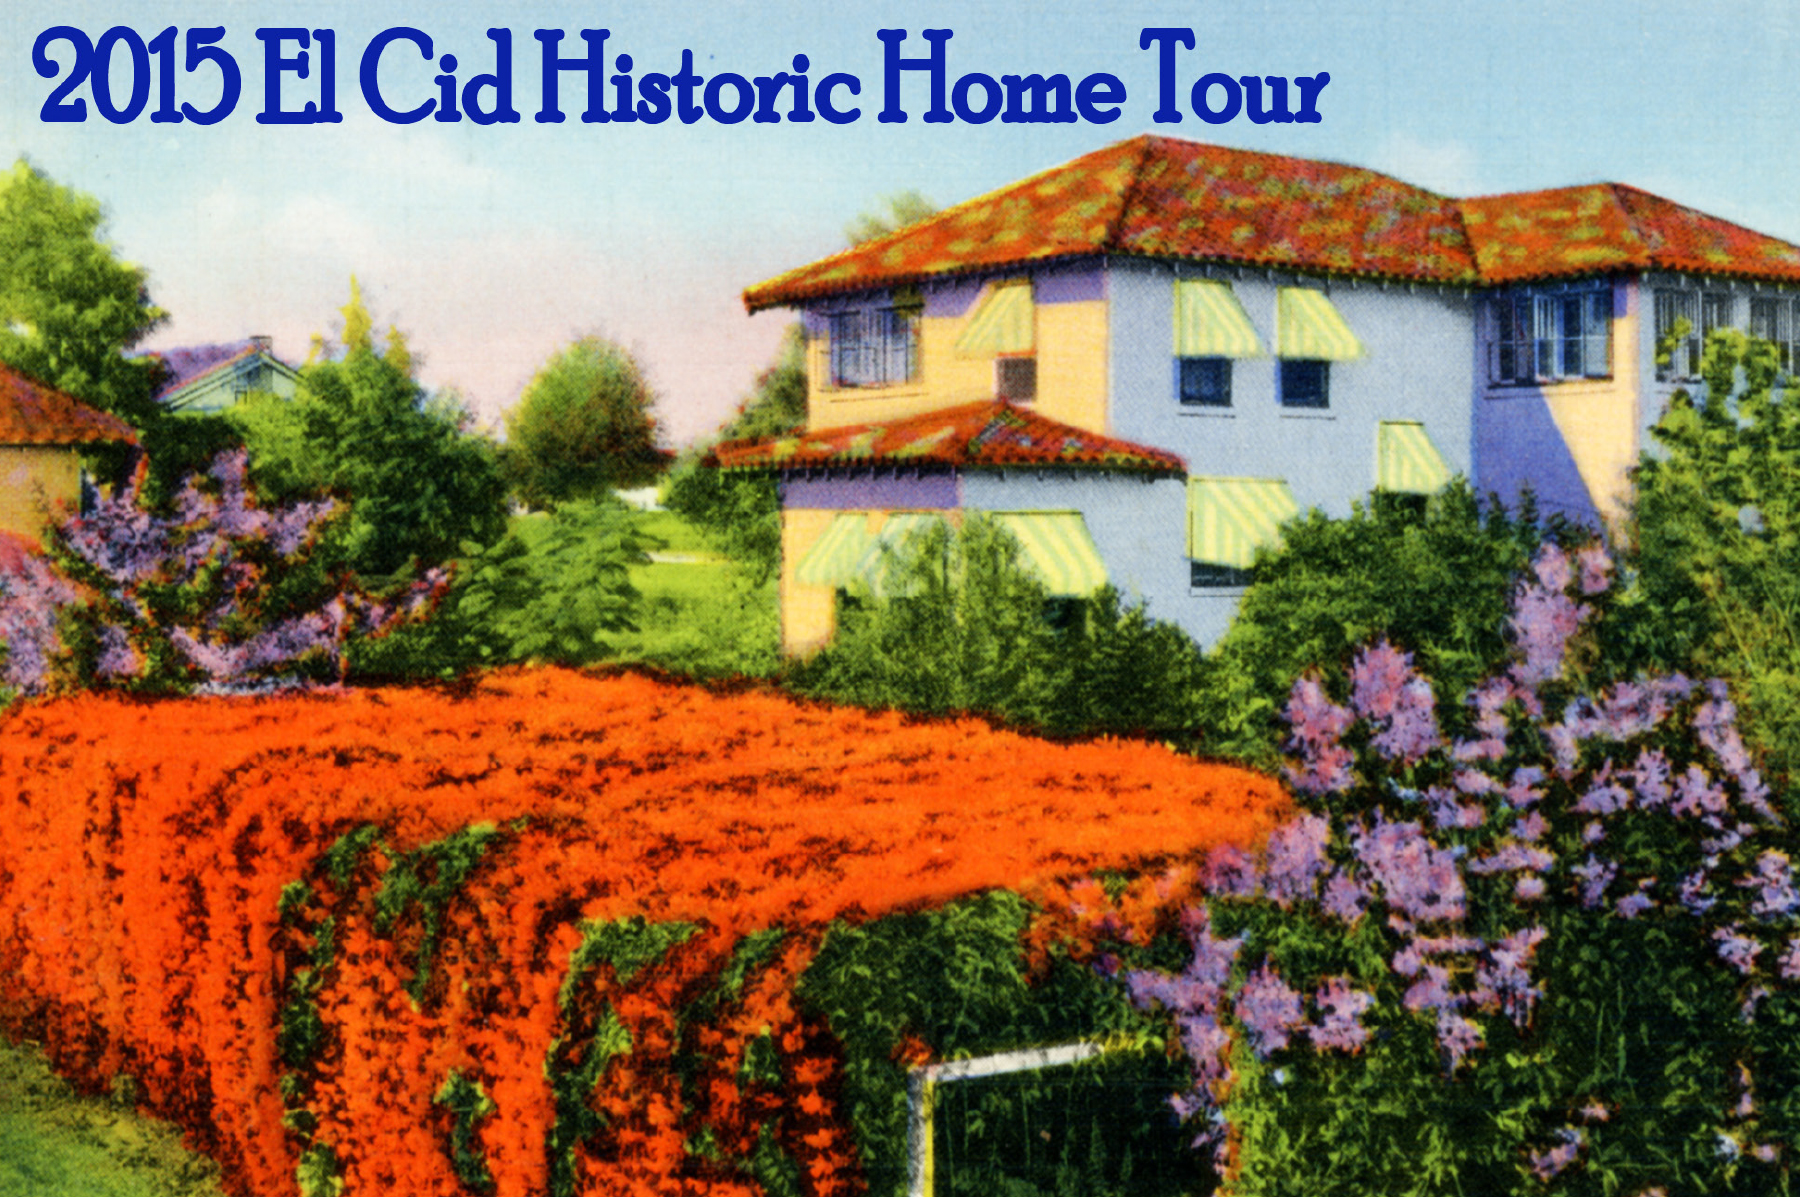 Click here for more information about the 2015 El Cid Historic Home Tour